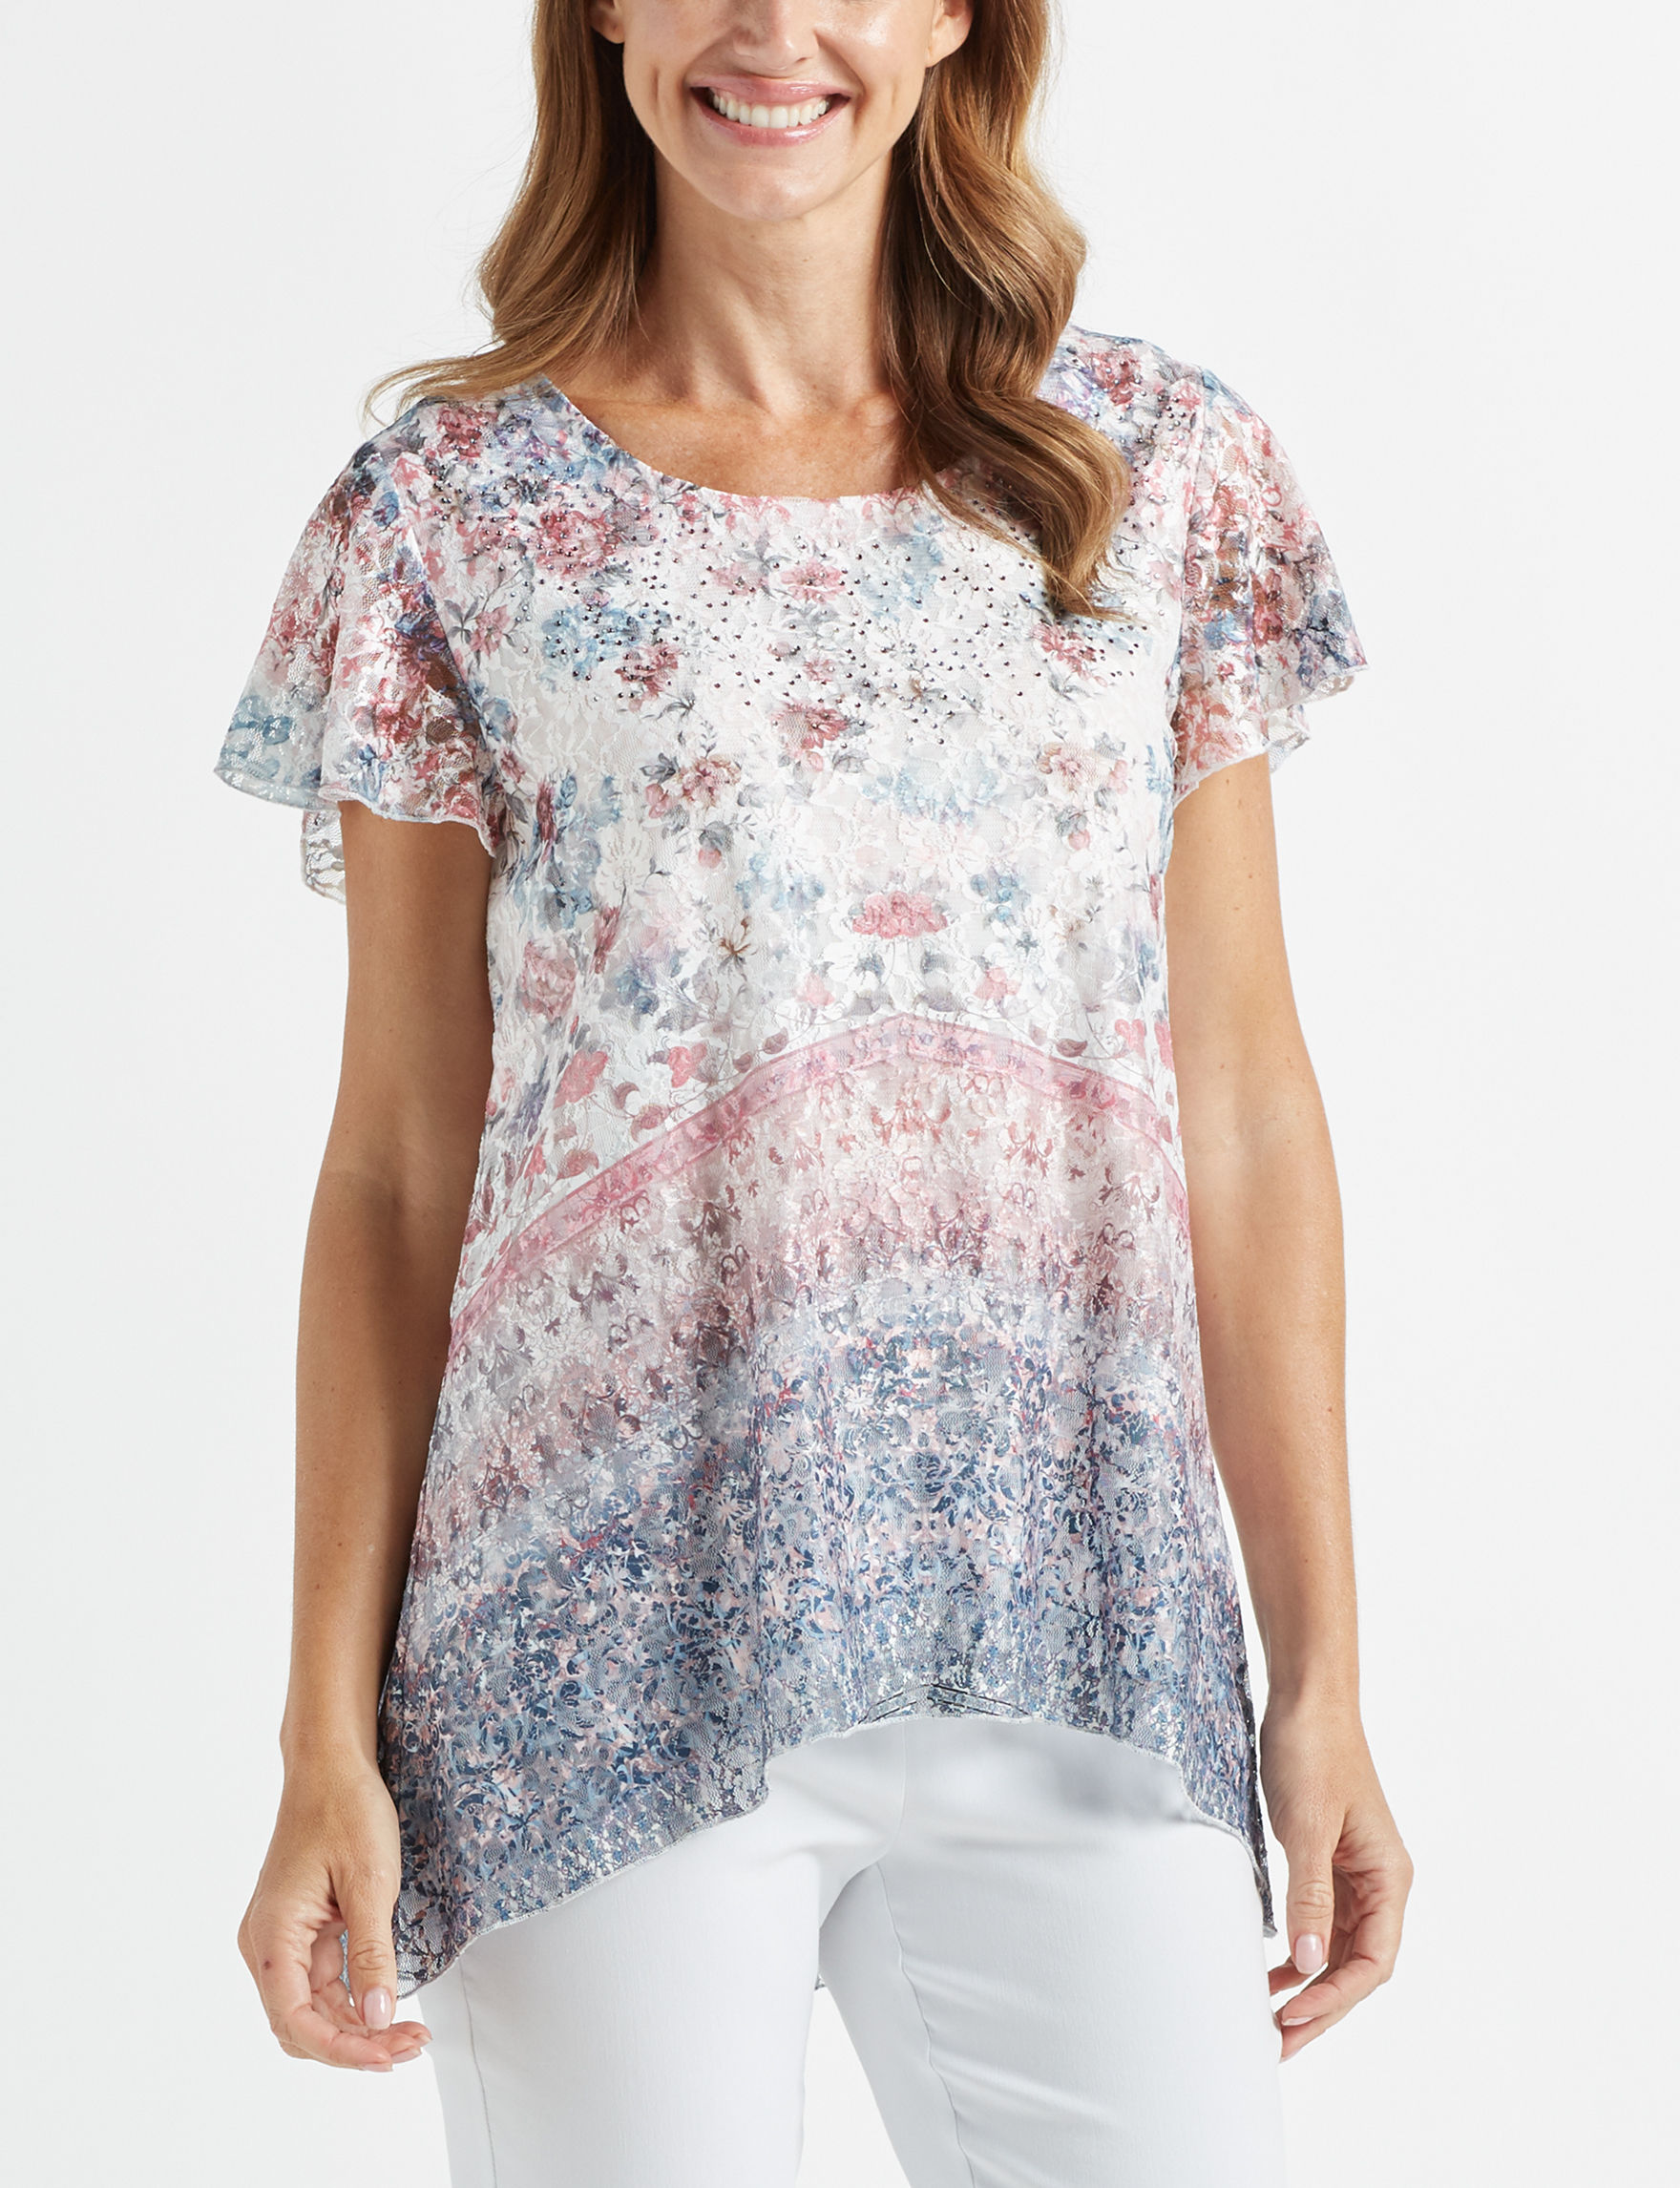 89th & Madison White Floral Shirts & Blouses